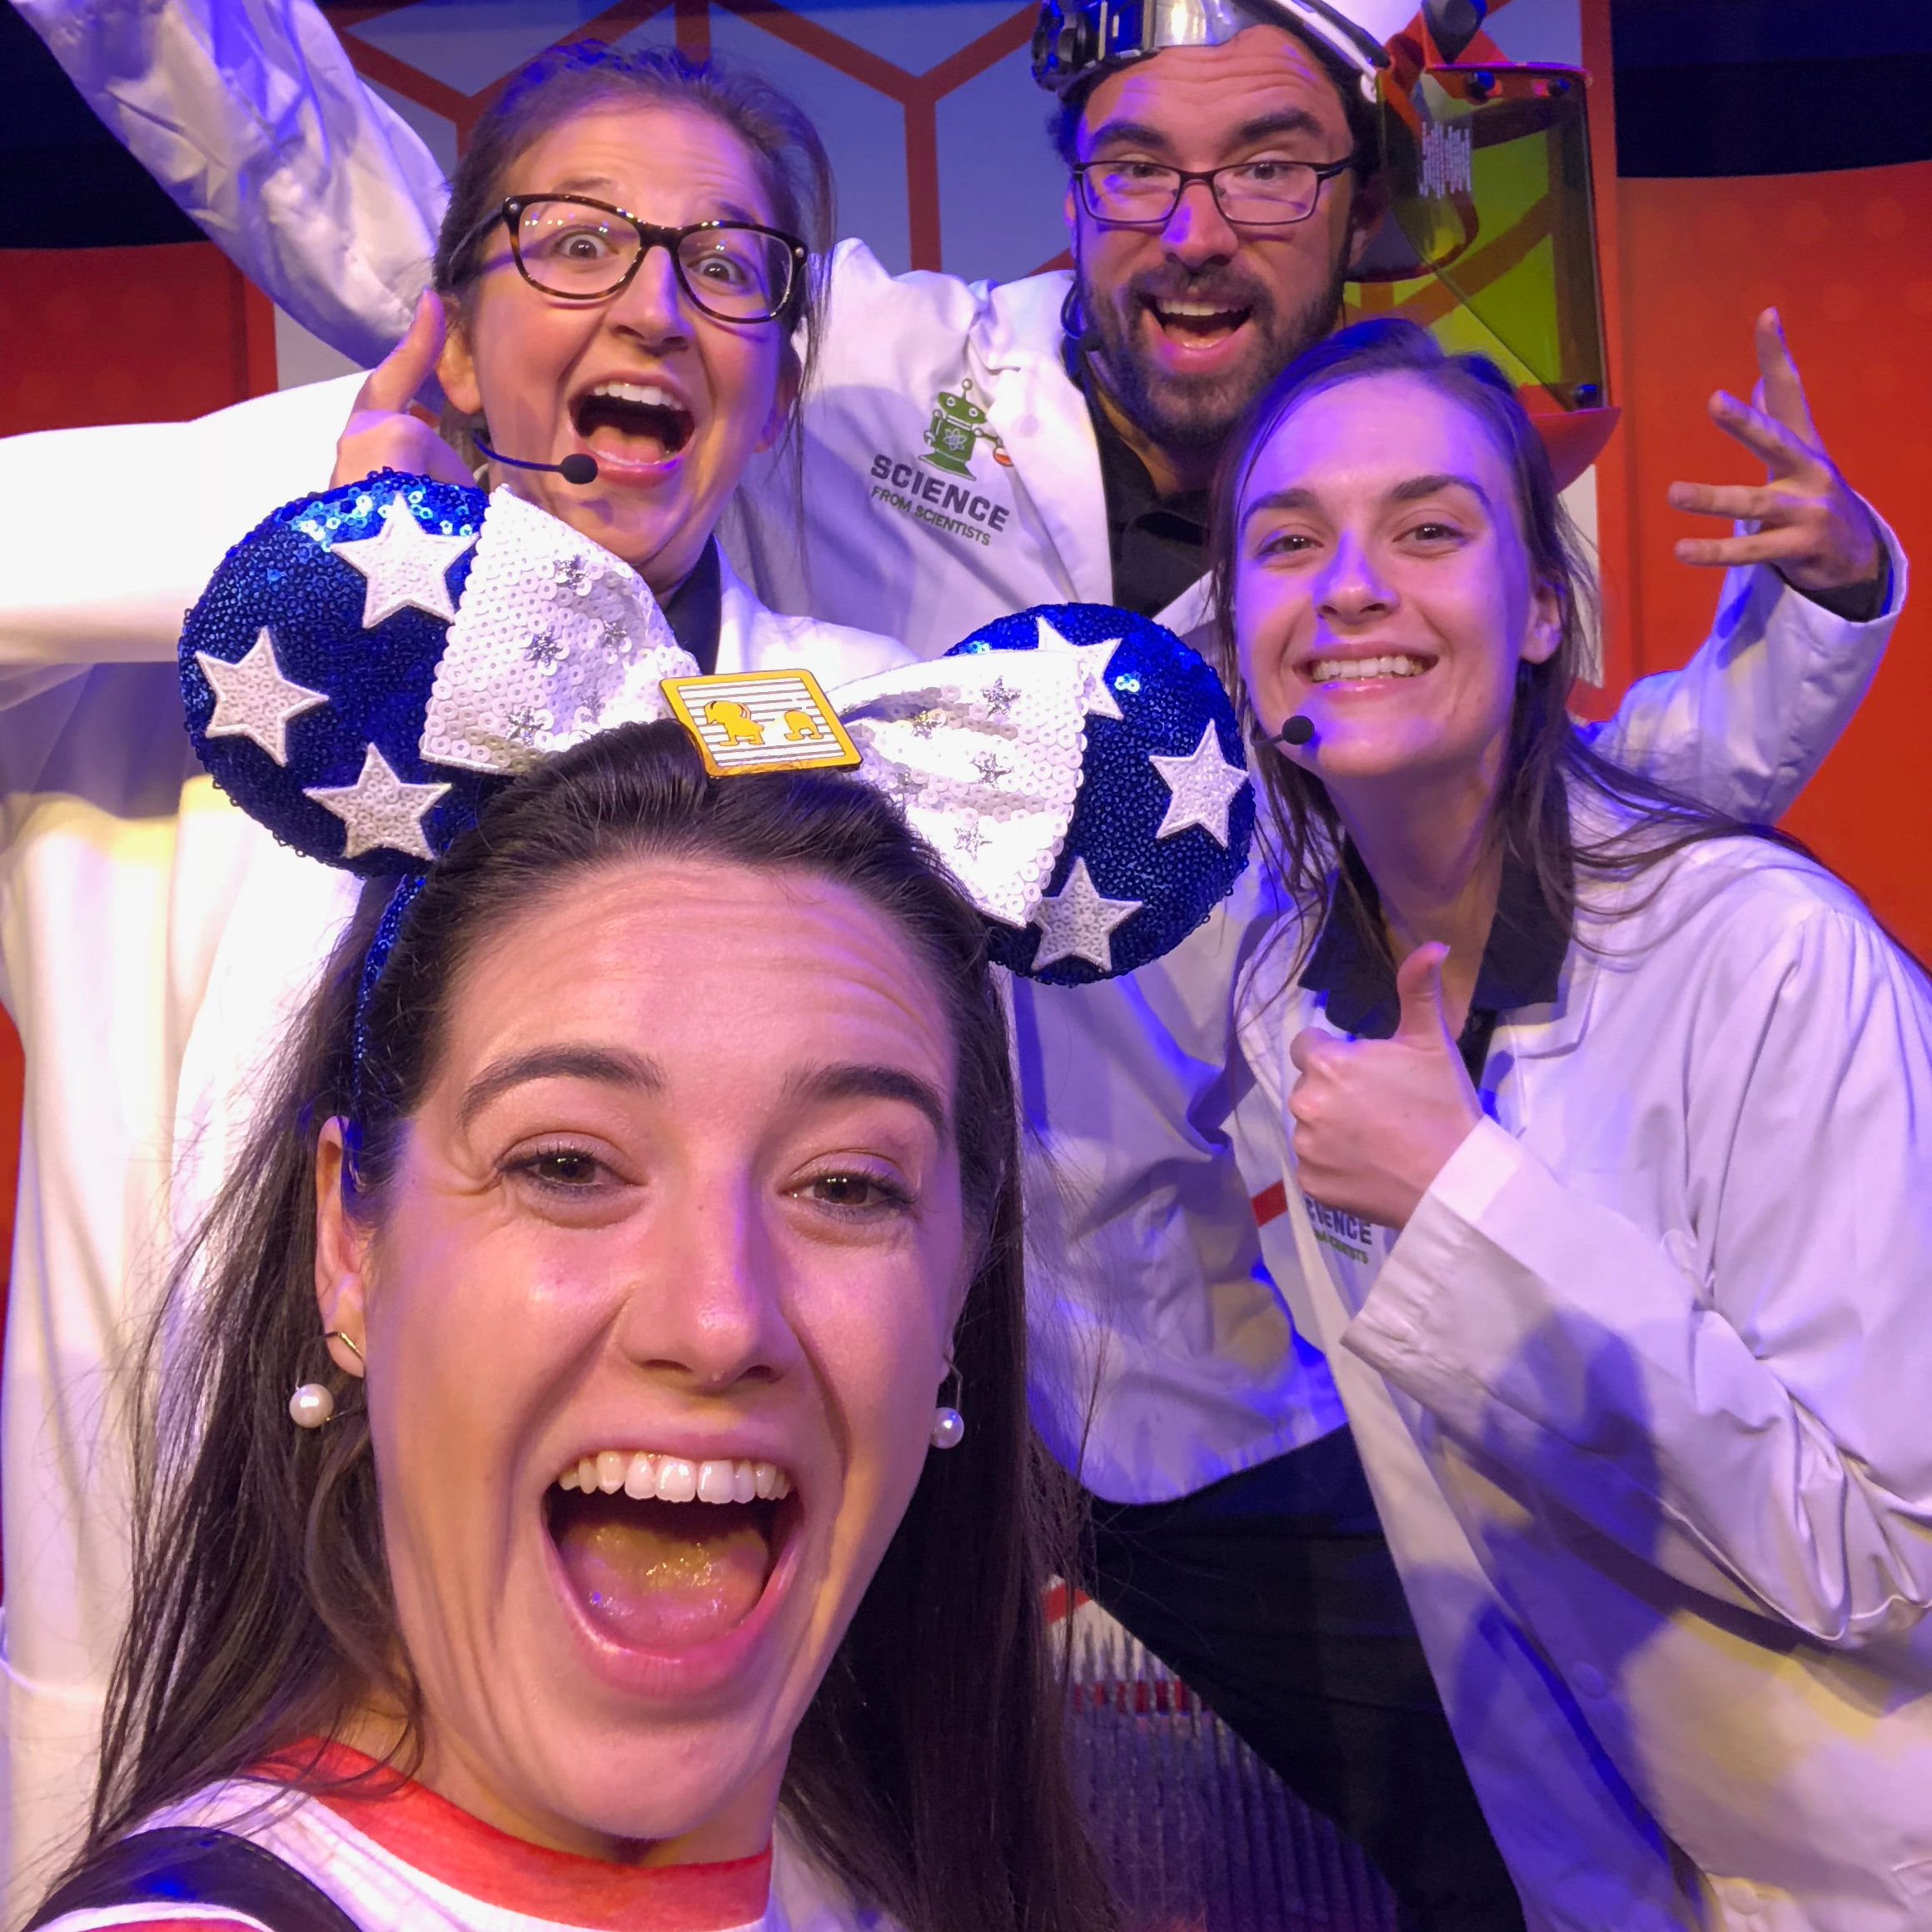 Sarah takes a selfie with three of the scientists from Epcot's Spectaculab attraction